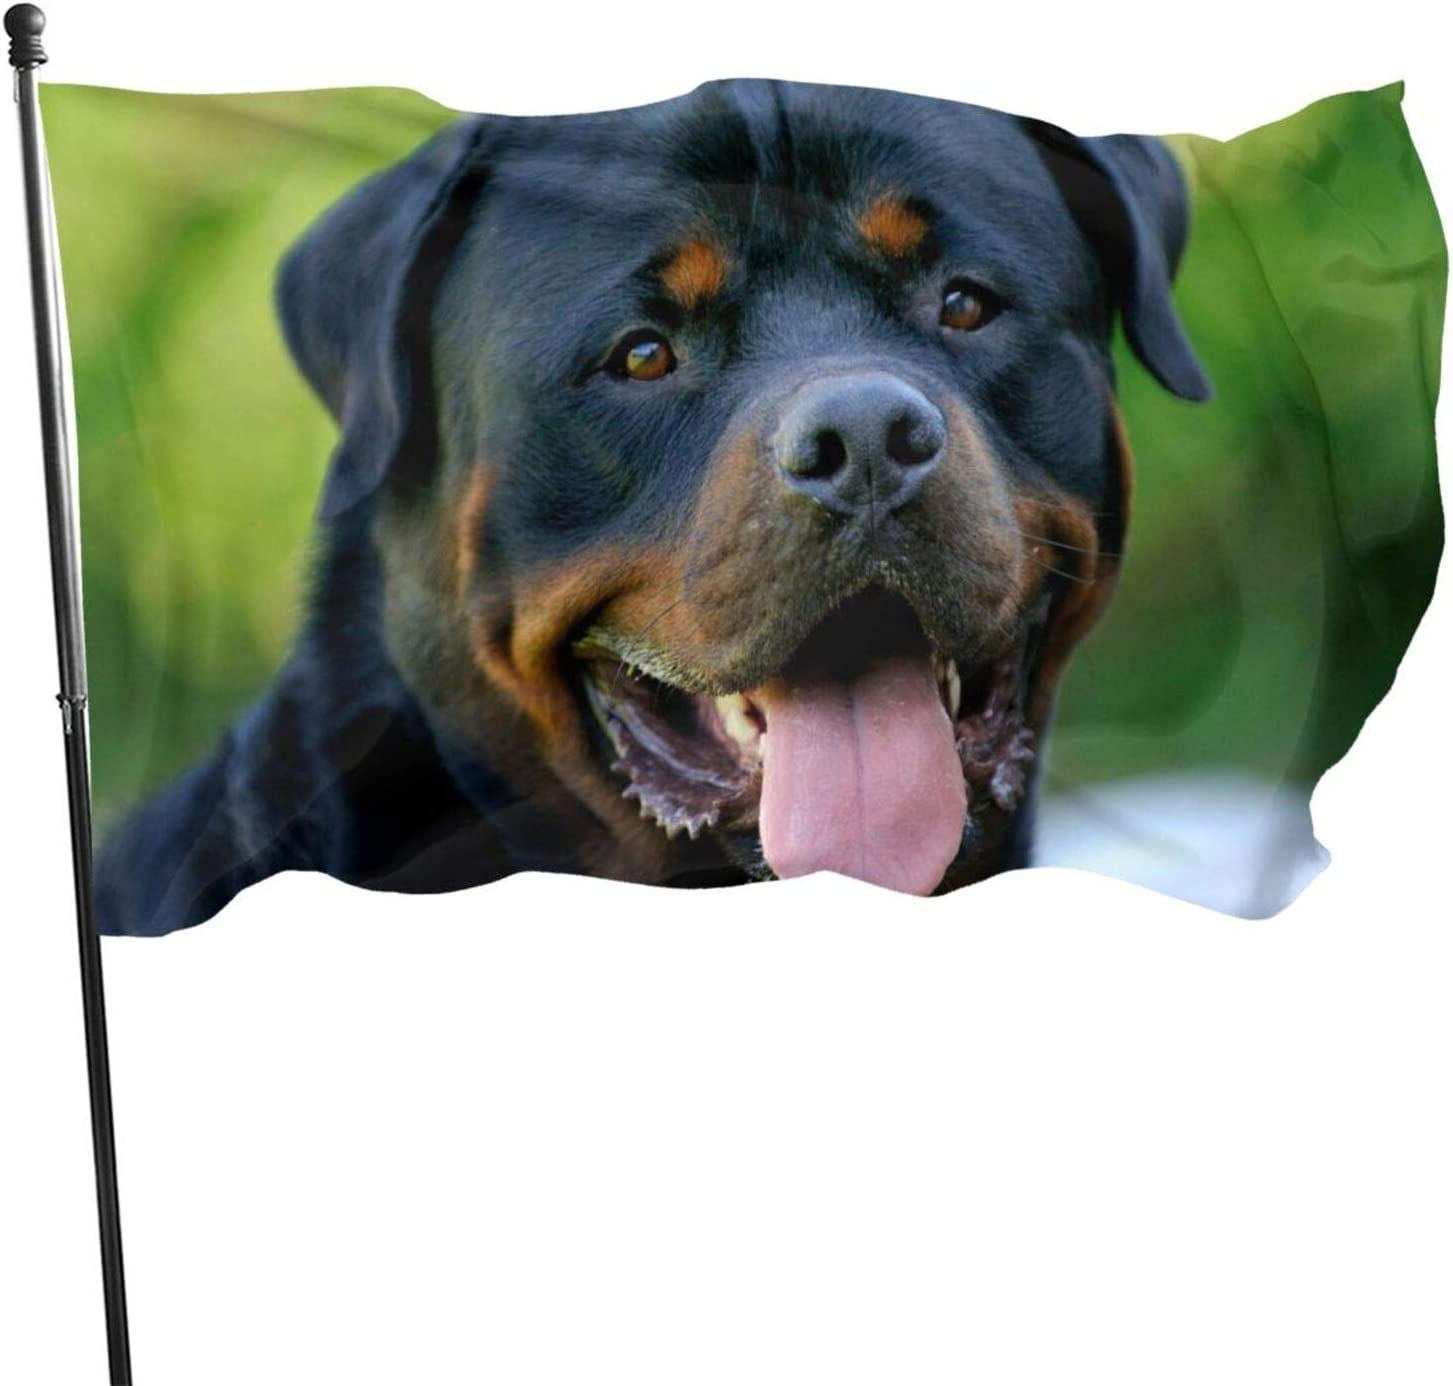 MVNB Rottweiler Dog 3x5 Foot Polyester Flag,Fade Resistant Durable Beach Flags with Header and Brass Grommet,Easy to Use